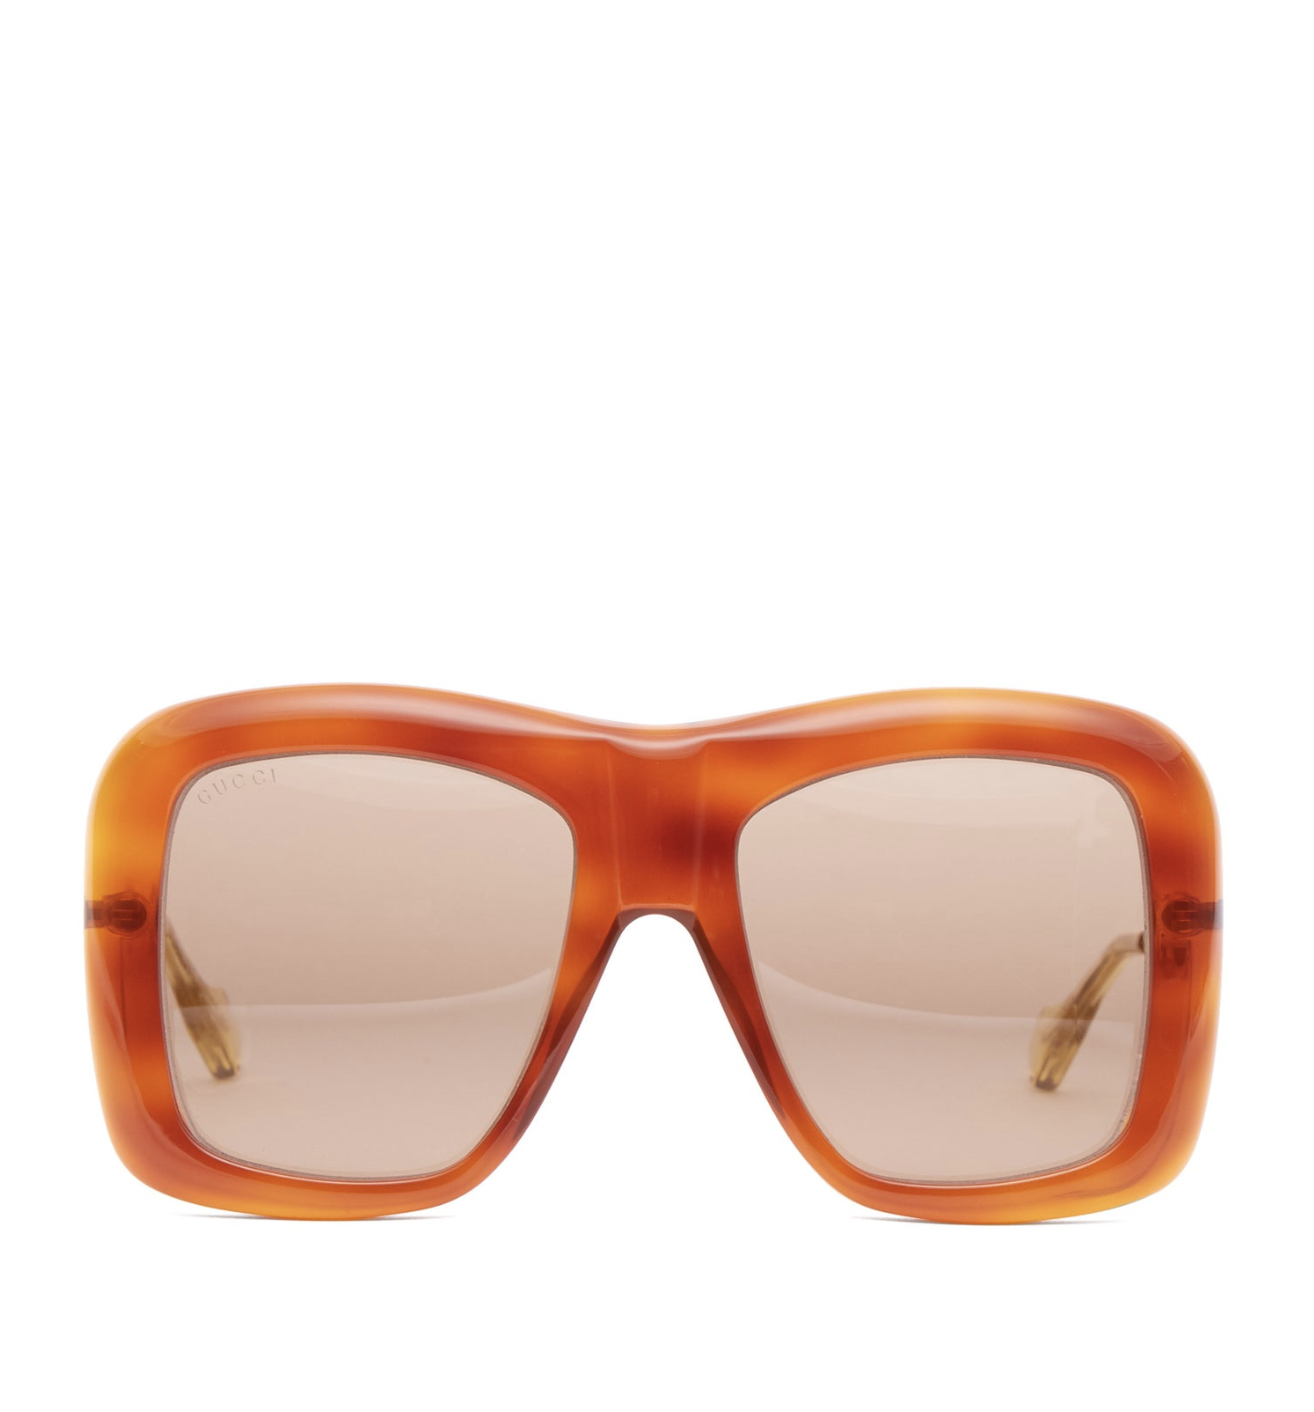 GUCCI Square Acetat and Metal Sunglasses